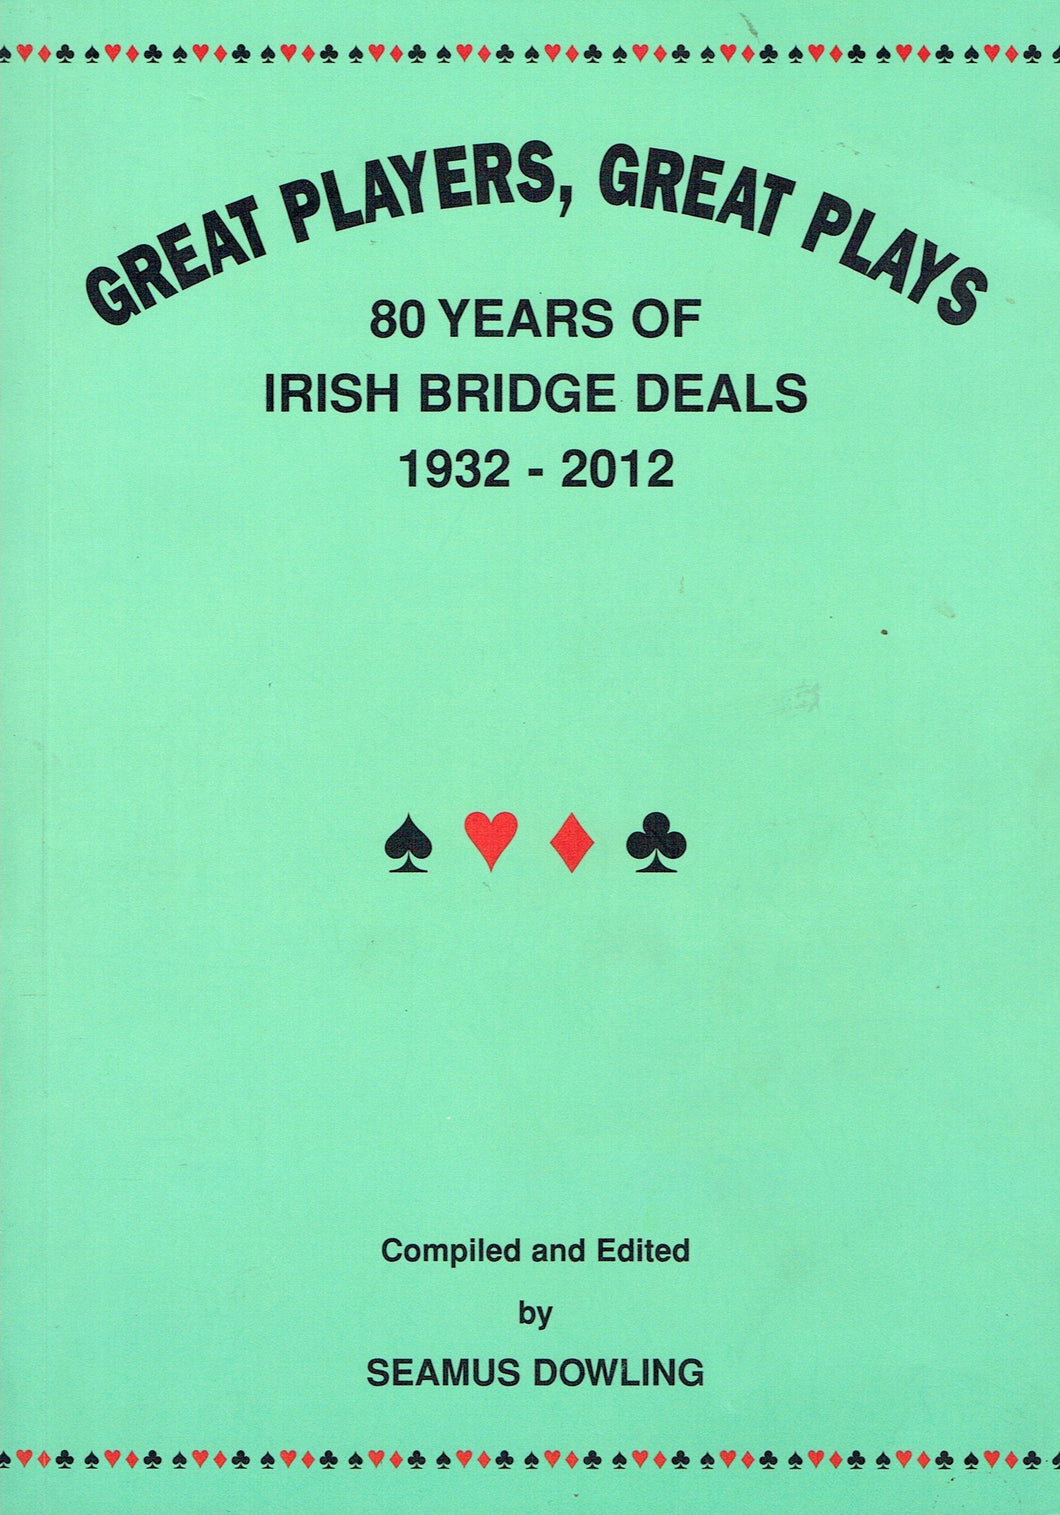 Great Players, Great Plays: 80 Years of Irish Bridge Deals, 1932-2012